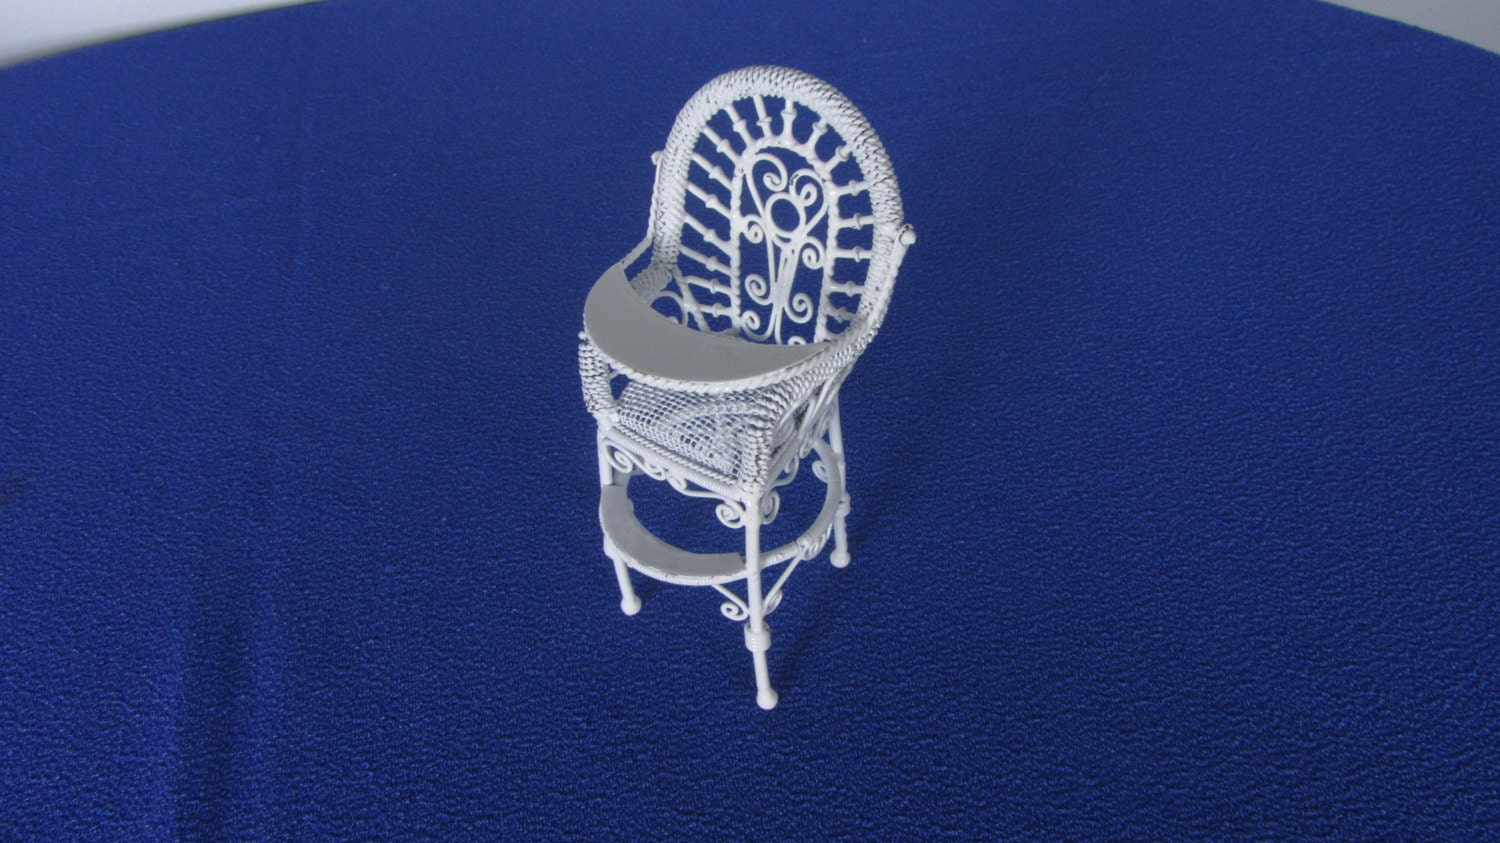 Dollhouse Miniature White Metal Chair, White Metal and Wire Chair 1:12 Scale, Vi